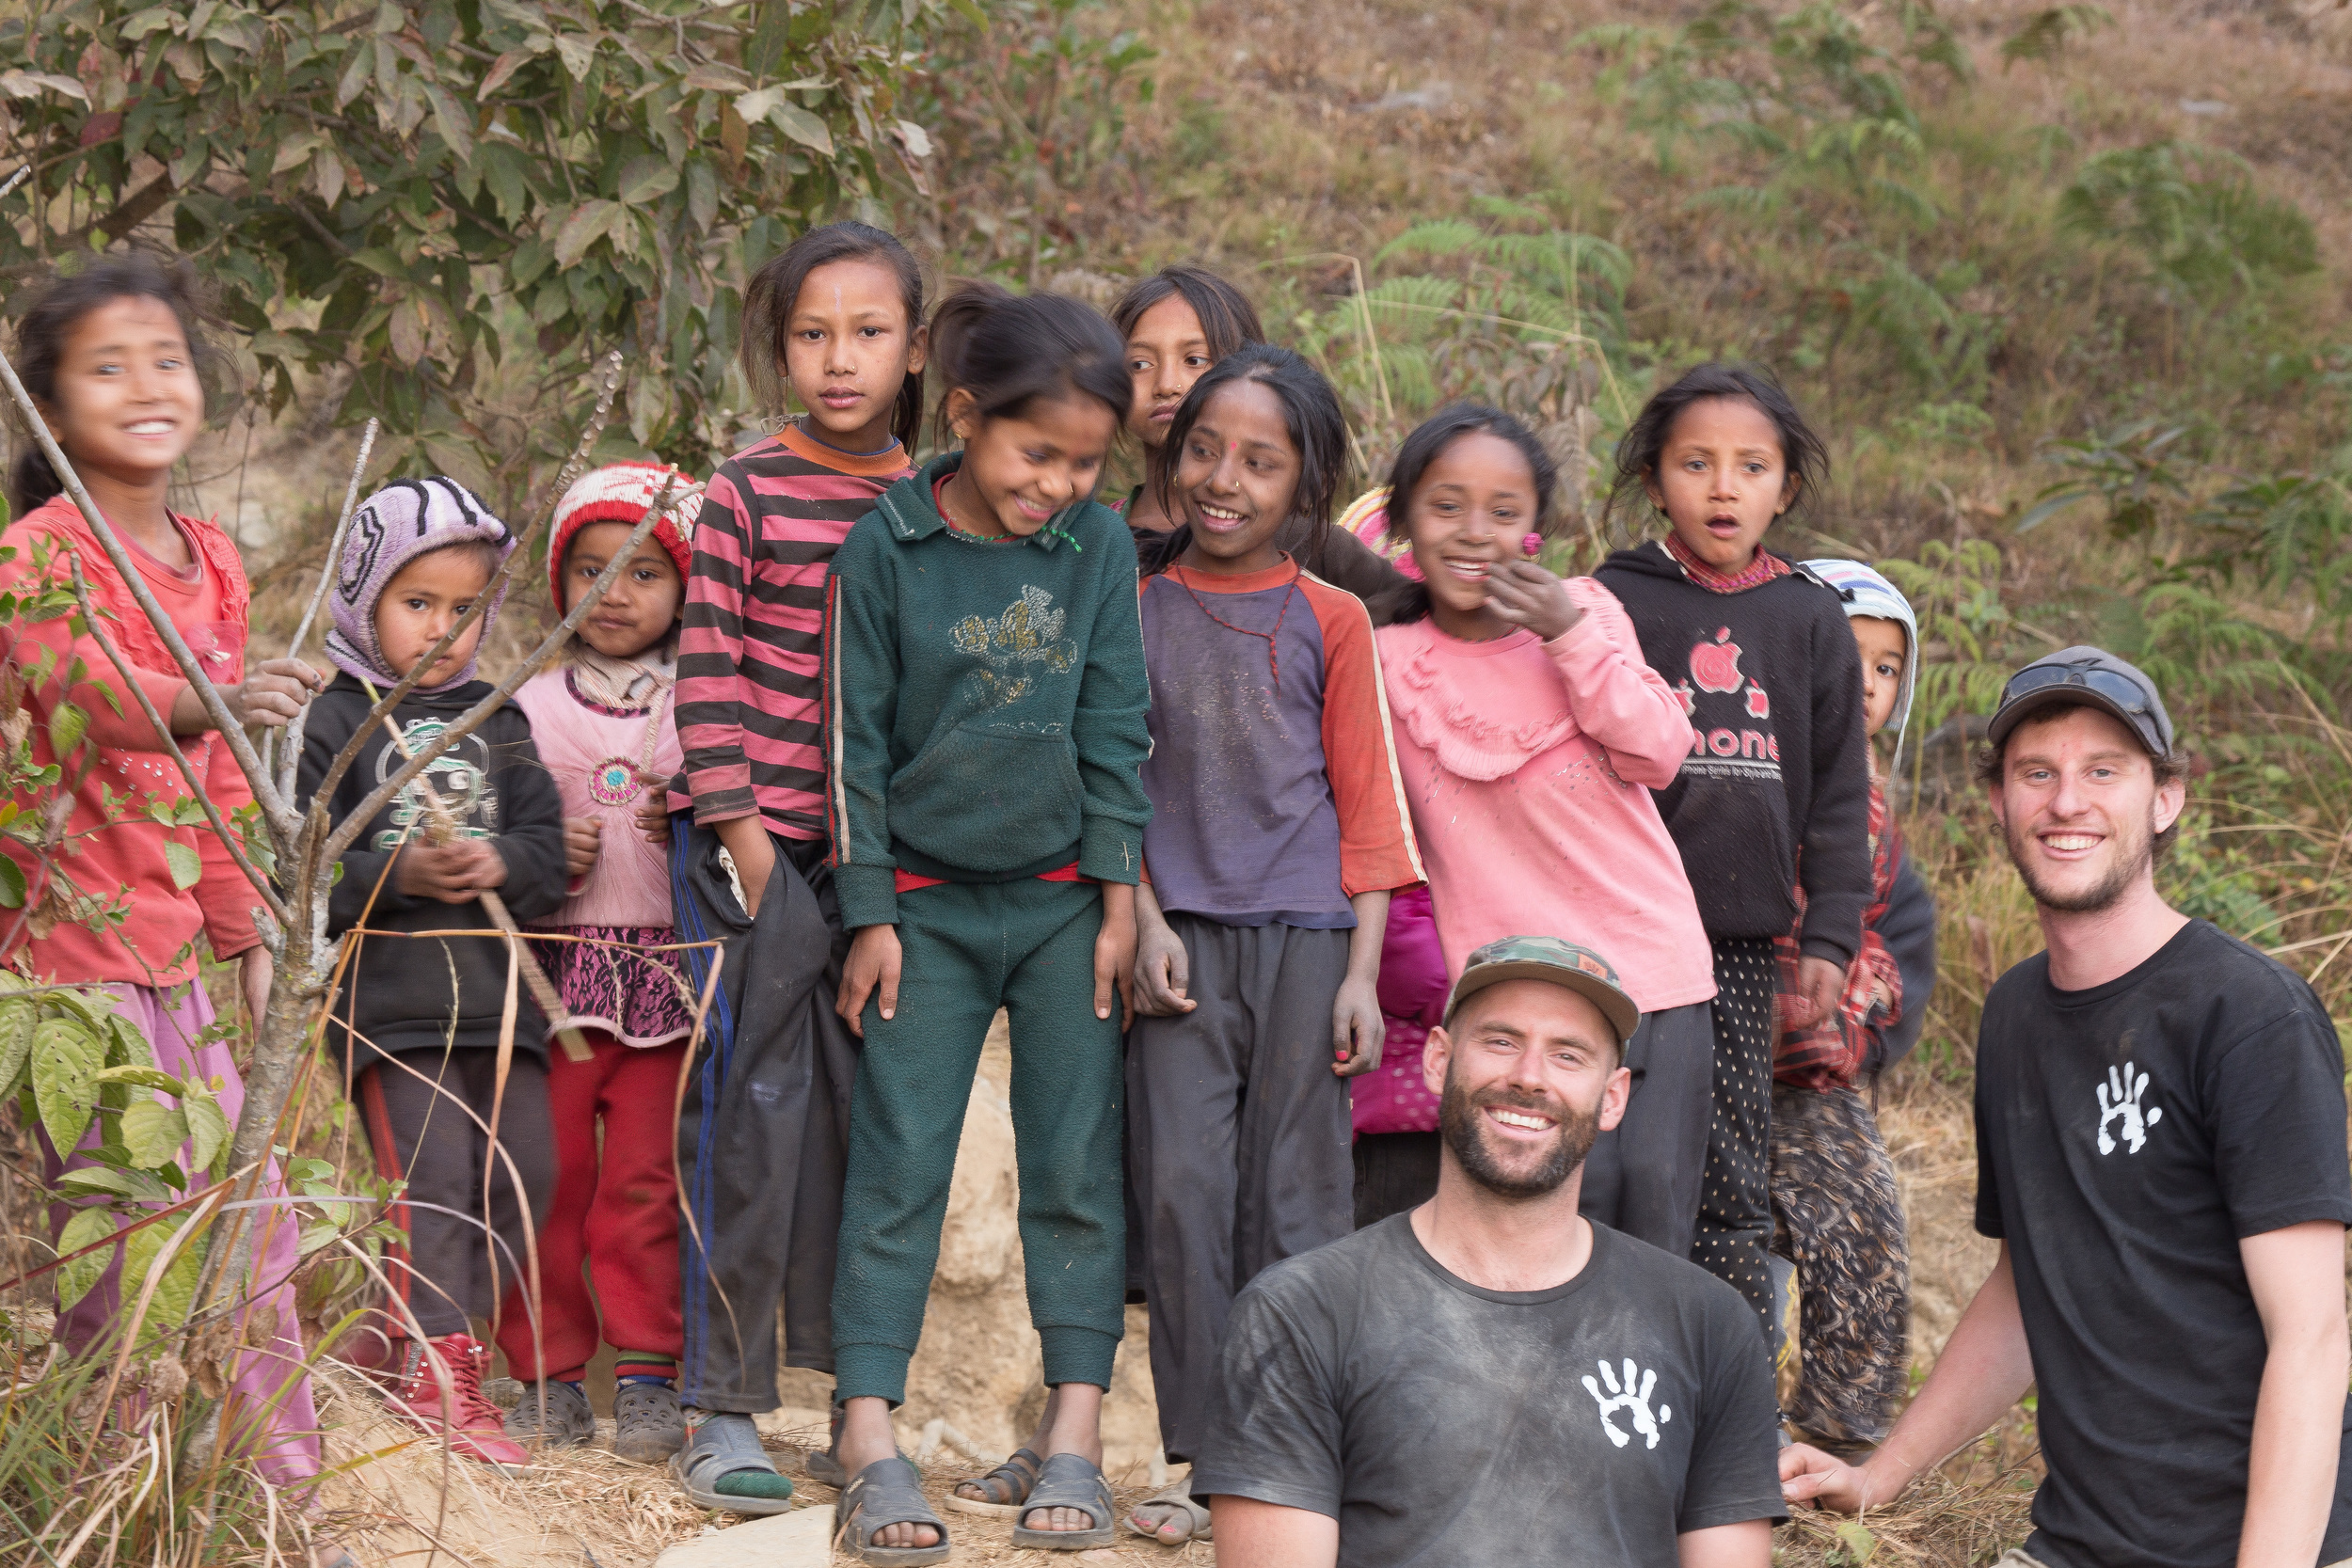 dean chytraus nepal education school trek thisworldexists this world exists